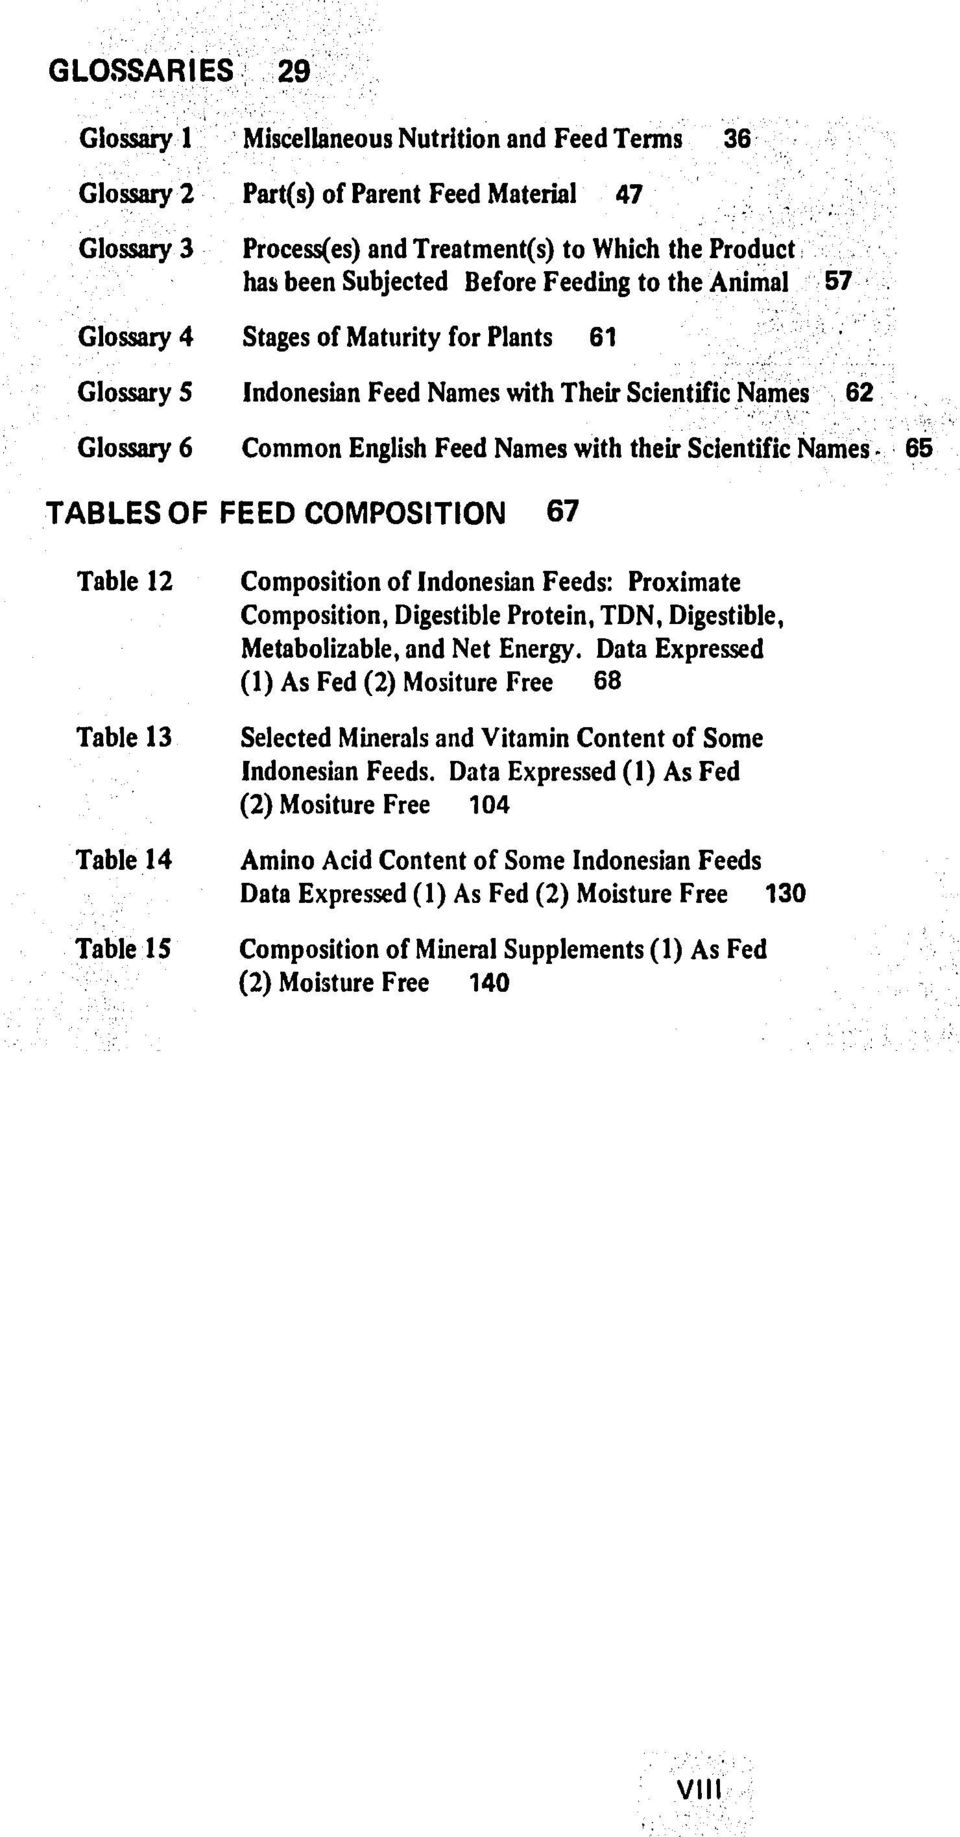 Names 65 57 TABLES OF FEED COMPOSITION 67 Table 12 Table 13 Table 14 Table 15 Composition of Indonesian Feeds: Proximate Composition, Digestible Protein, TDN, Digestible, Metabolizable, and Net